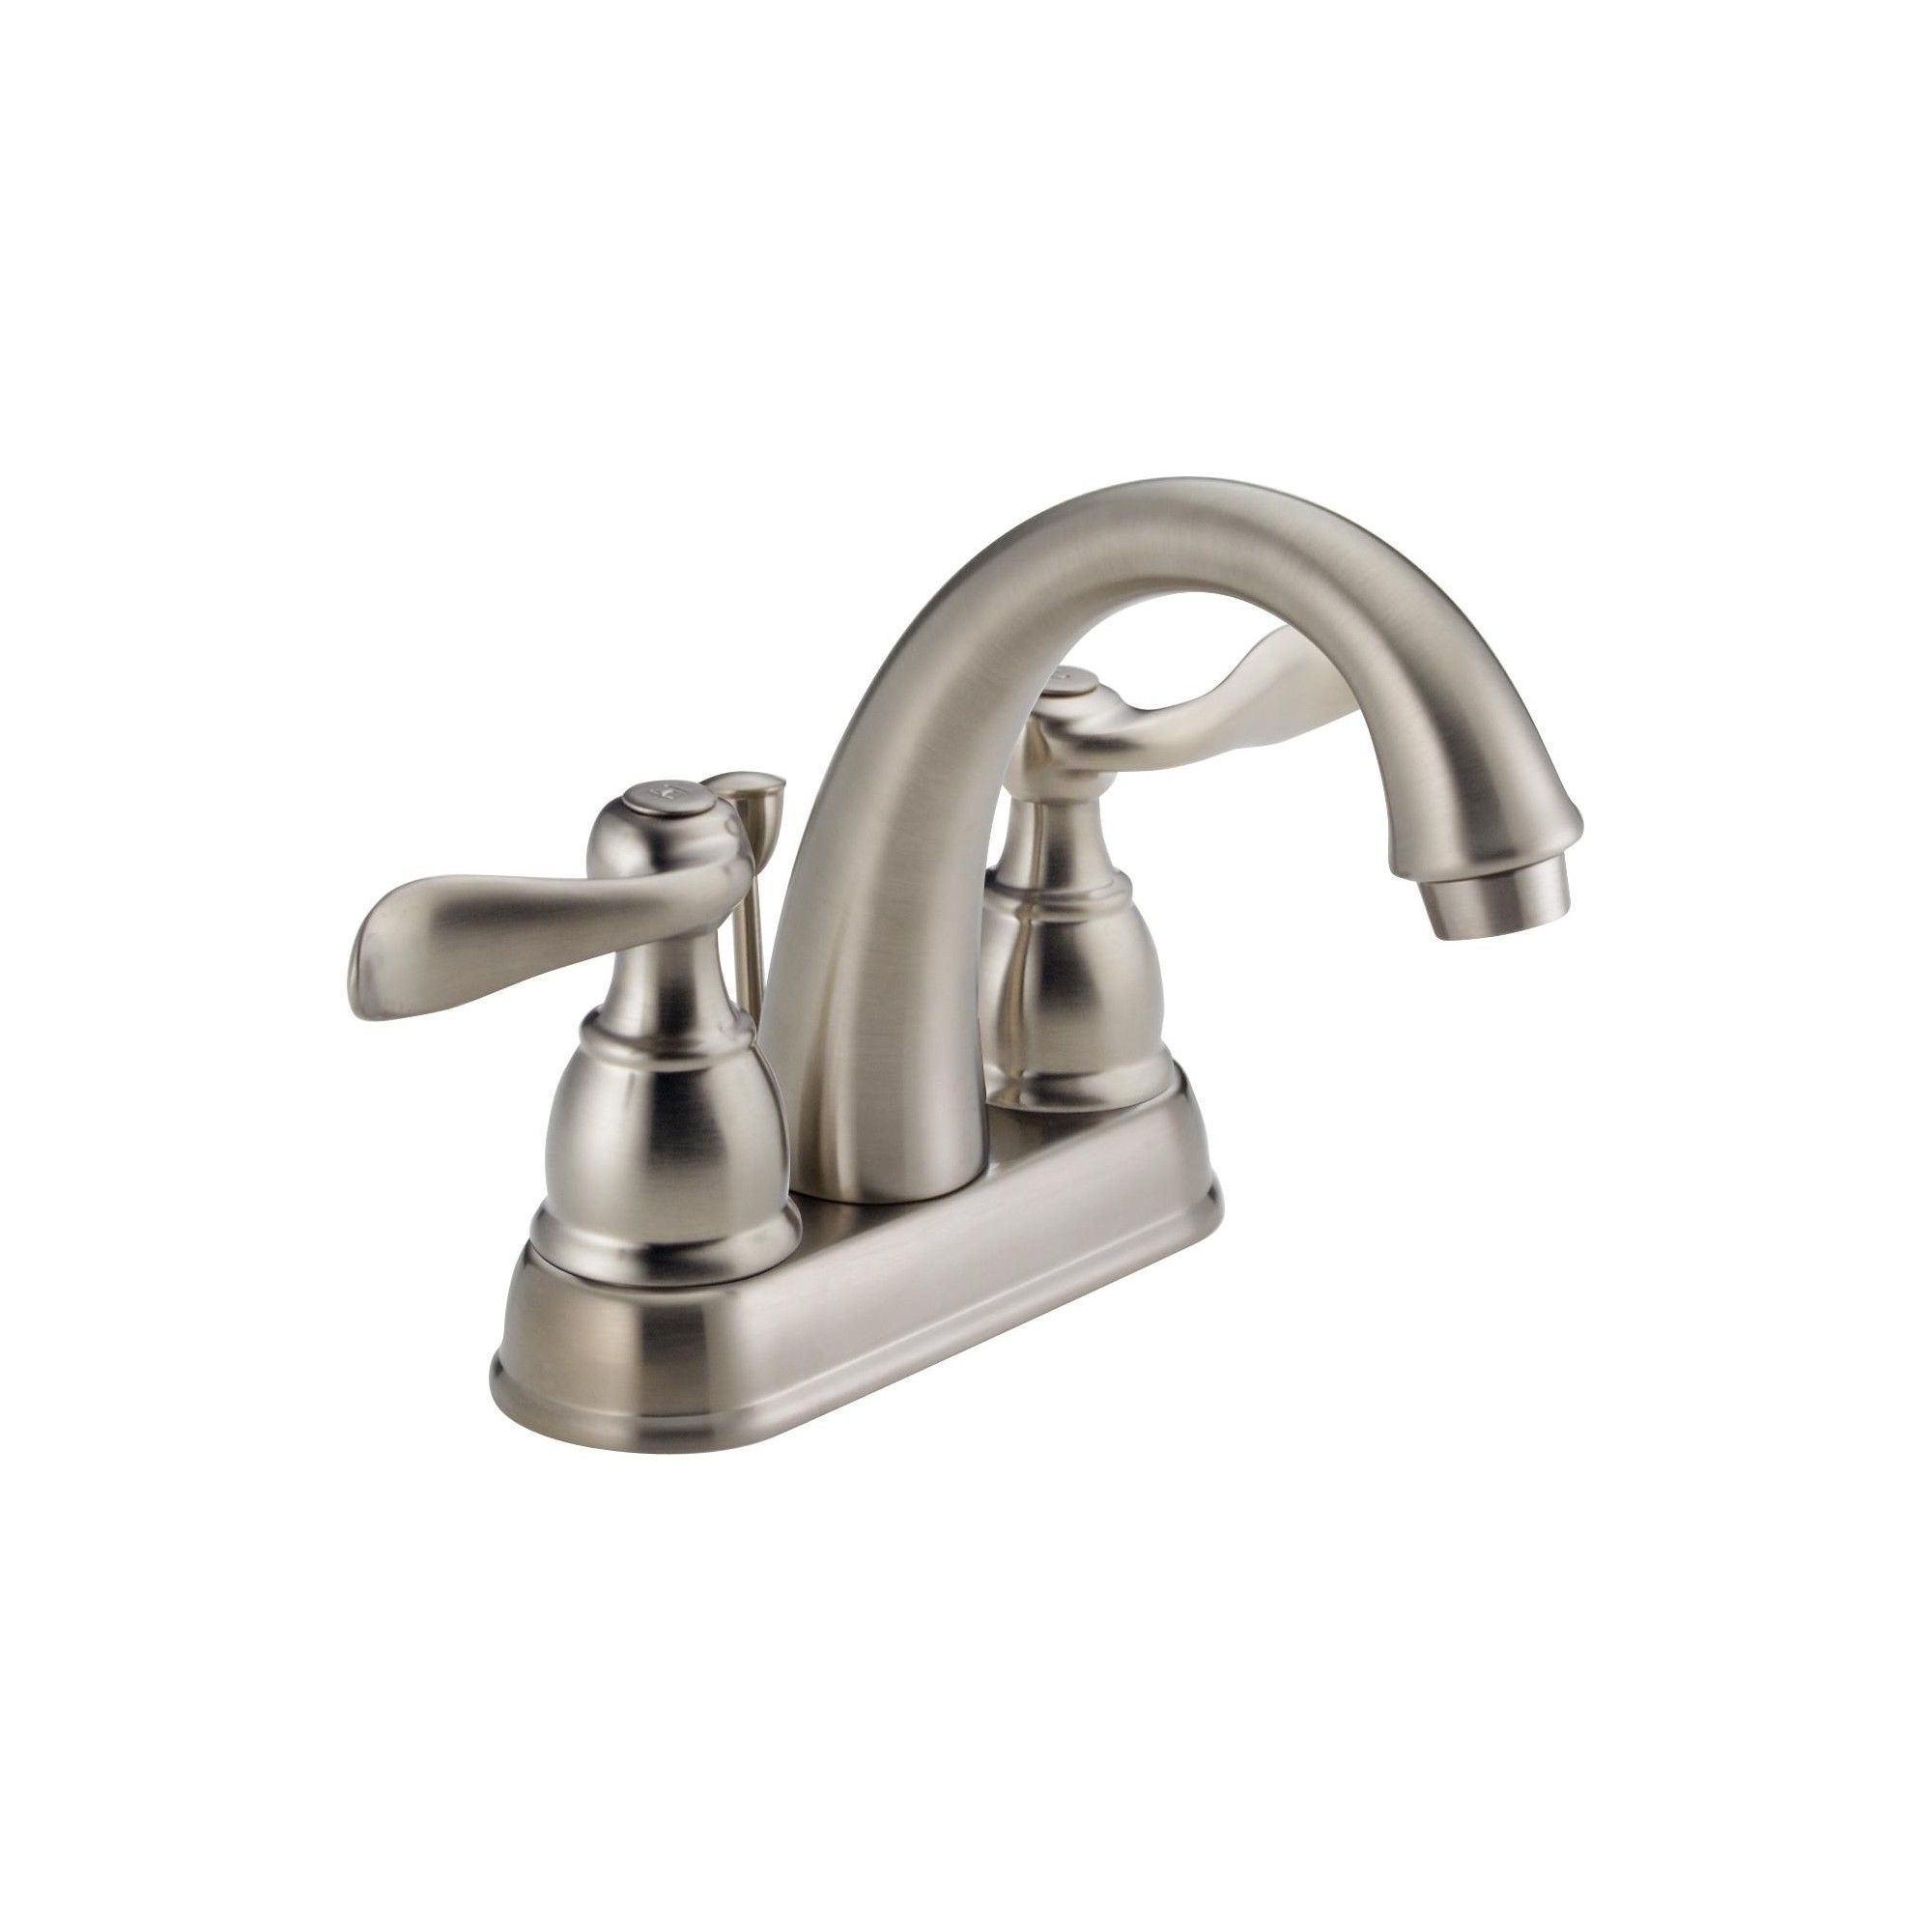 Delta Faucet B2596lf Windemere Centerset Bathroom Faucet With Pop Up Drain Assembly Brilliance Stainless Delta Faucets Bathroom Faucets Faucet